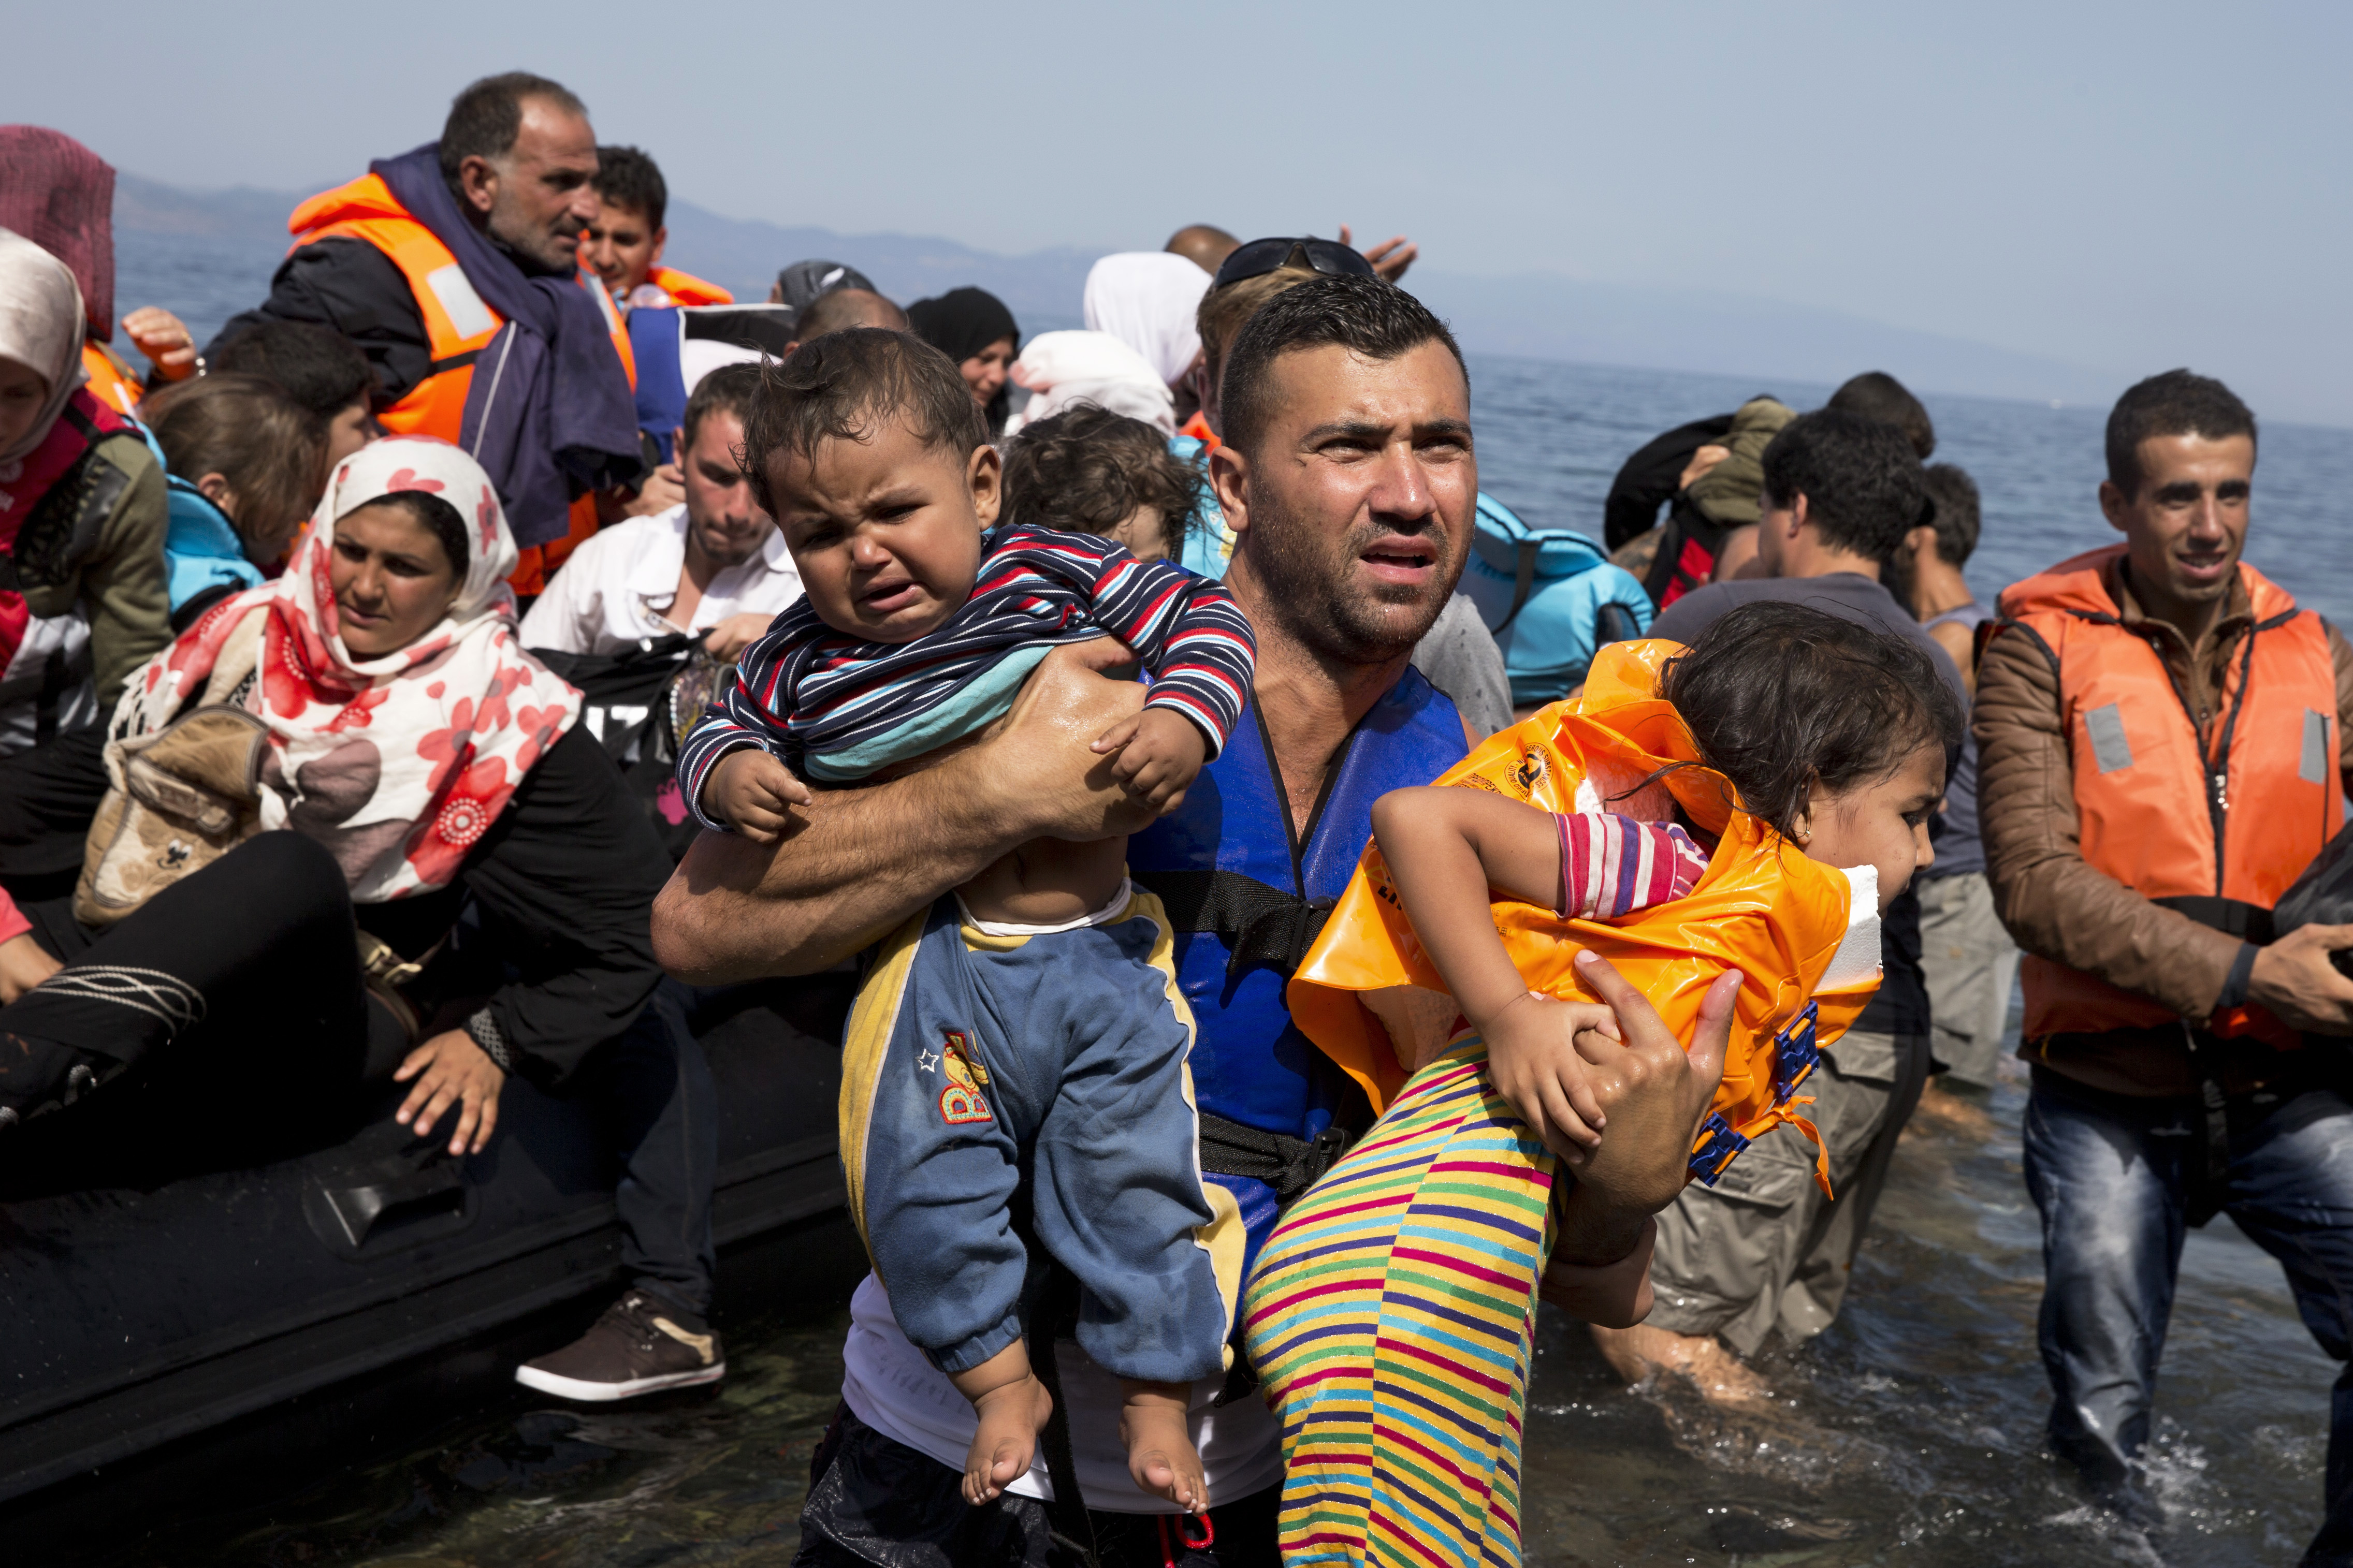 court rules states have to accept syrian refugees - washington times